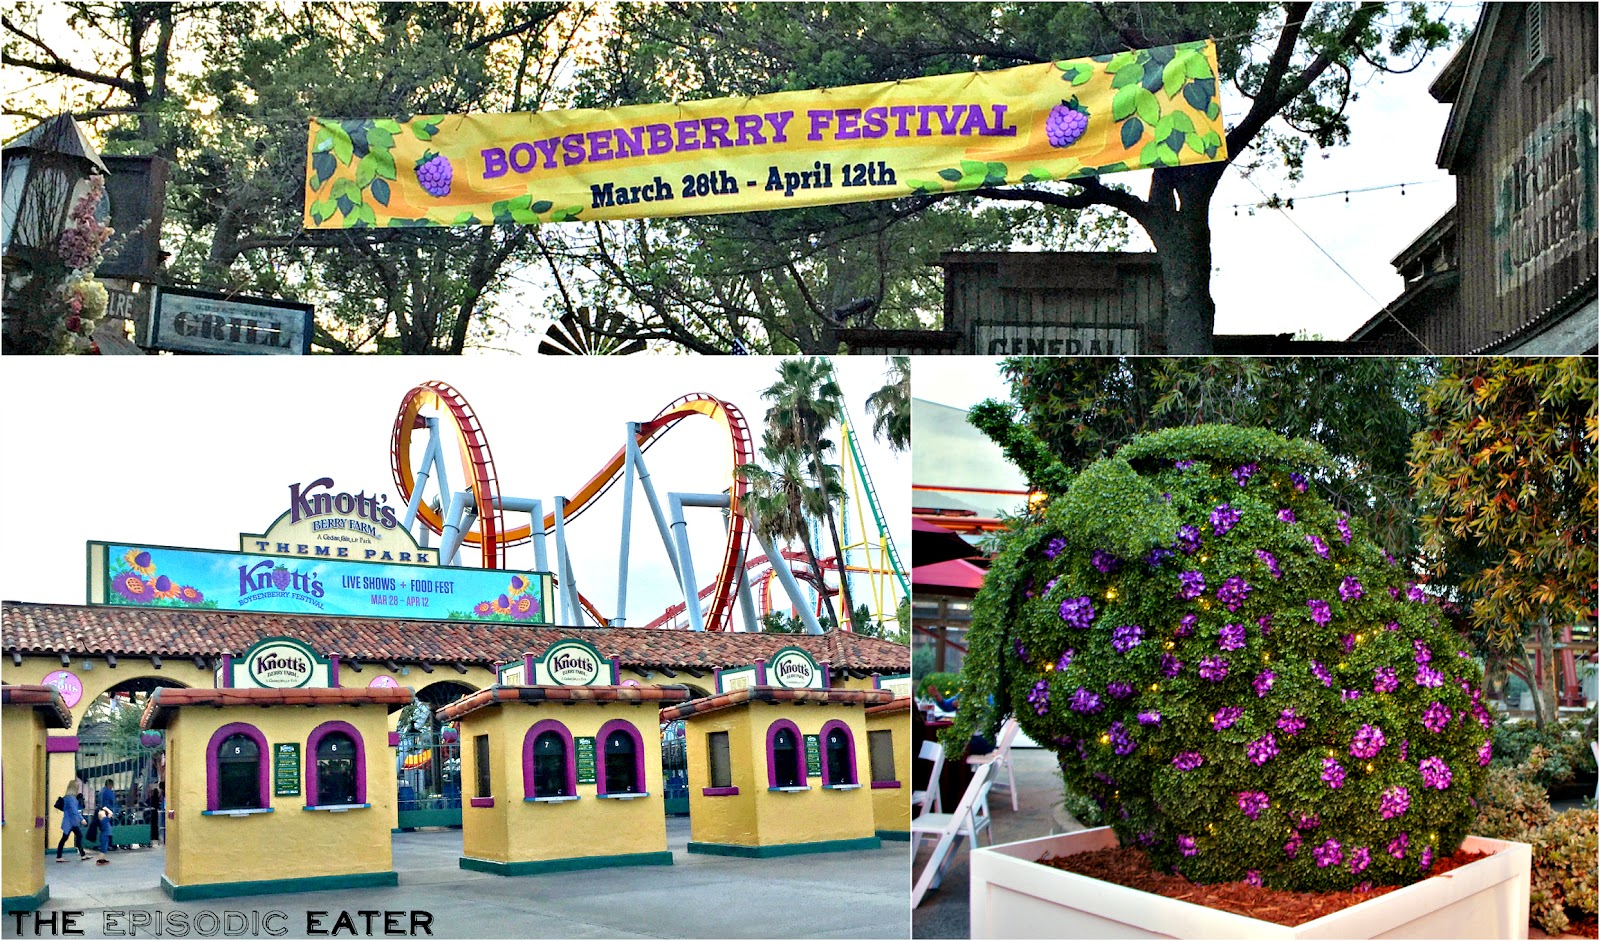 Knott's Berry Farm's Boysenberry Festival on The Episodic Eater! #KnottsSpring